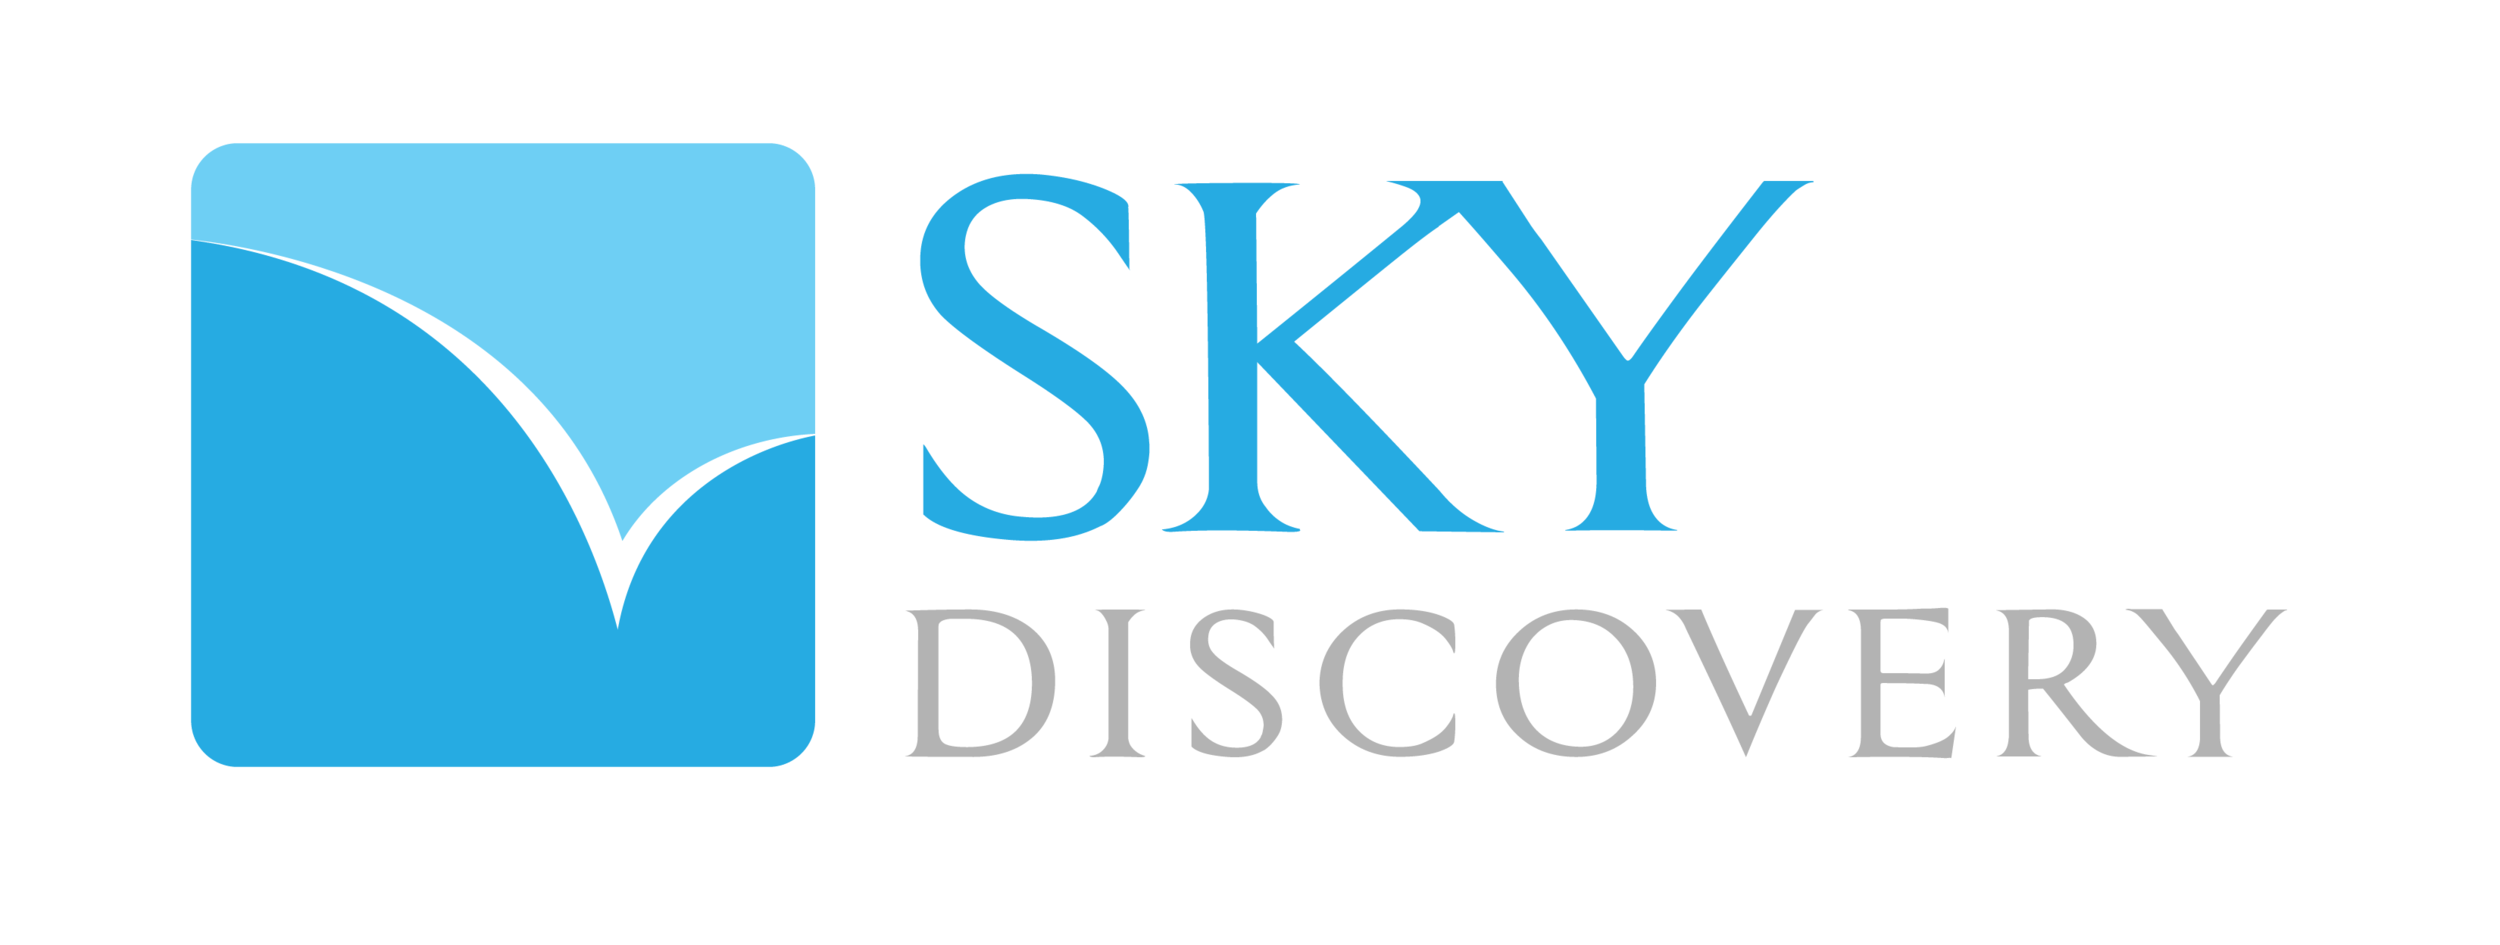 Sky Discovery.  Sky Discovery is a high end legal technology consultancy providing Relativity software and consulting services to Law firms and Corporations in the Australian market. Visit:  www.skydiscovery.com.au